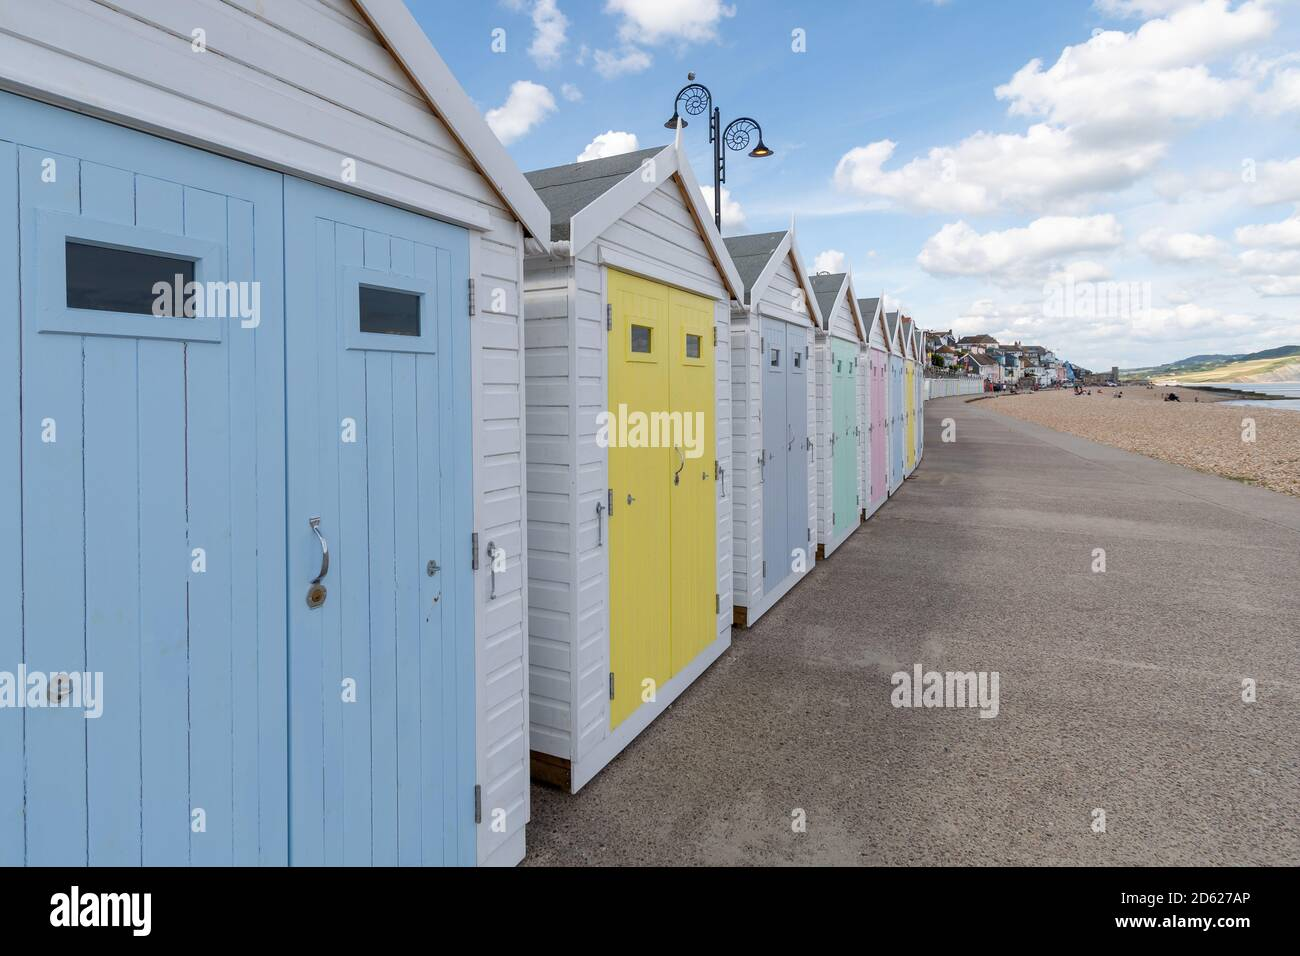 Beach huts in a row at the beach with multi coloured doors Stock Photo